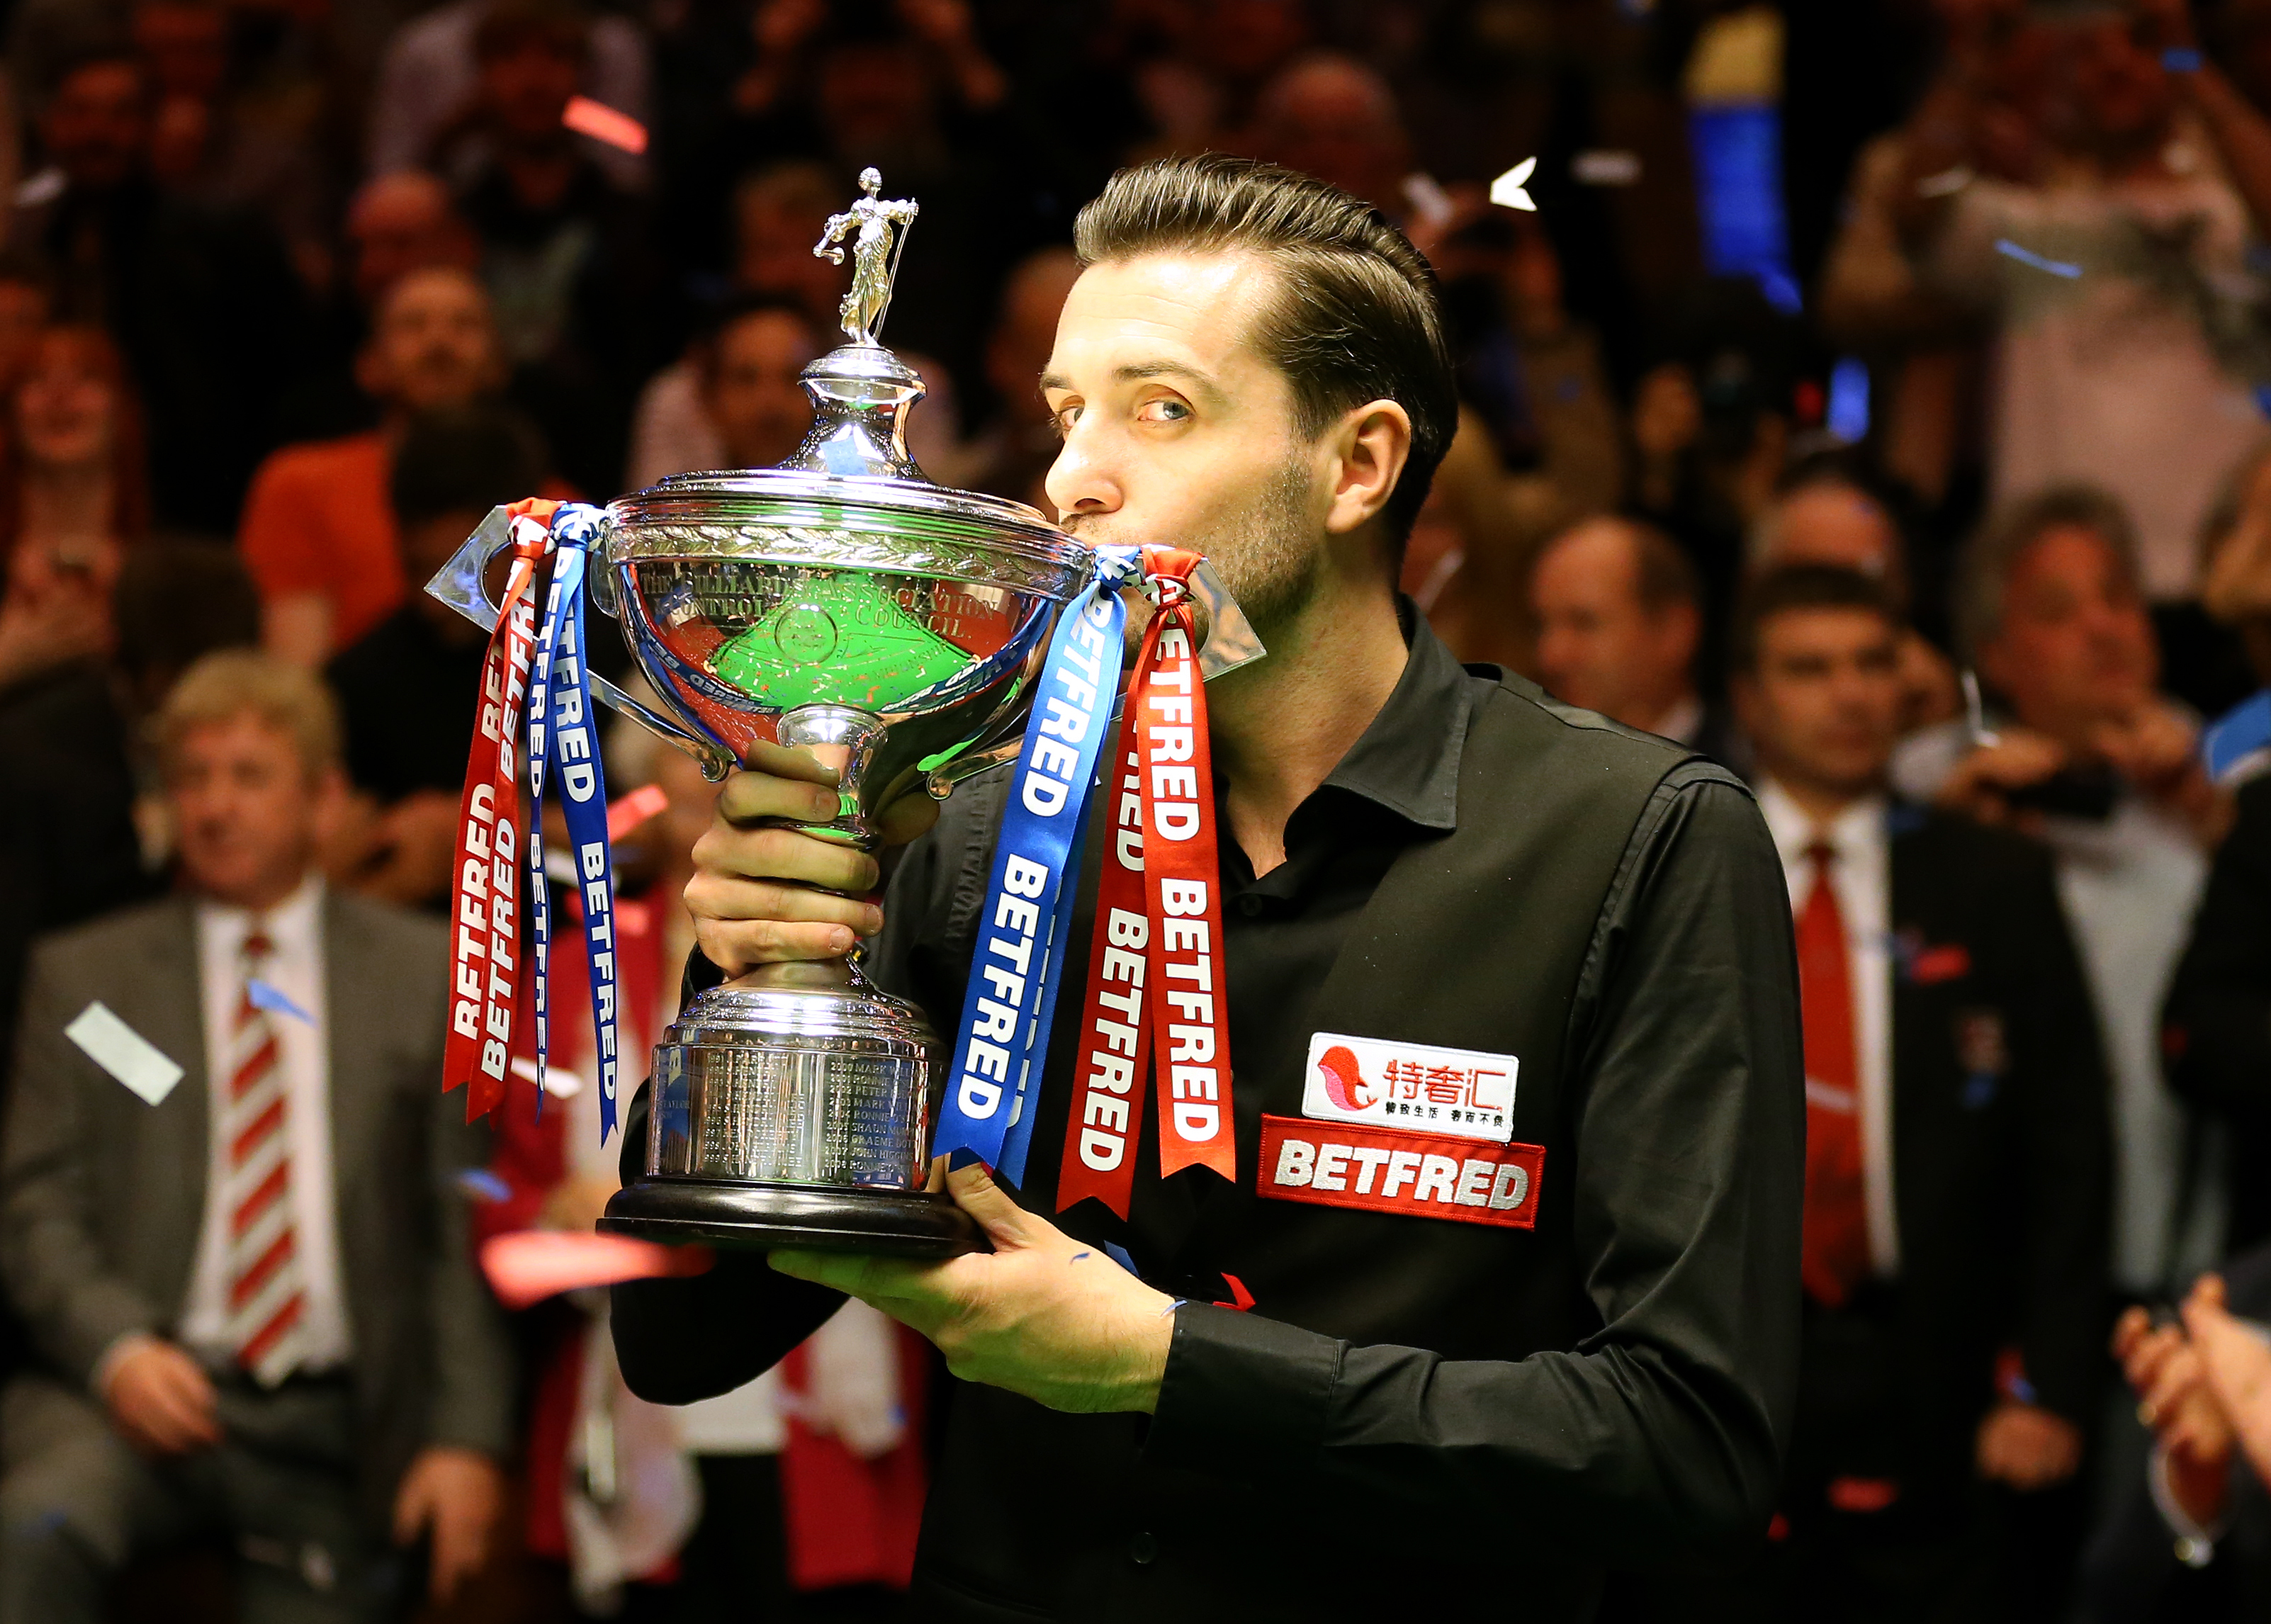 Mark Selby celebrates winning the 2017 Snooker World Championships